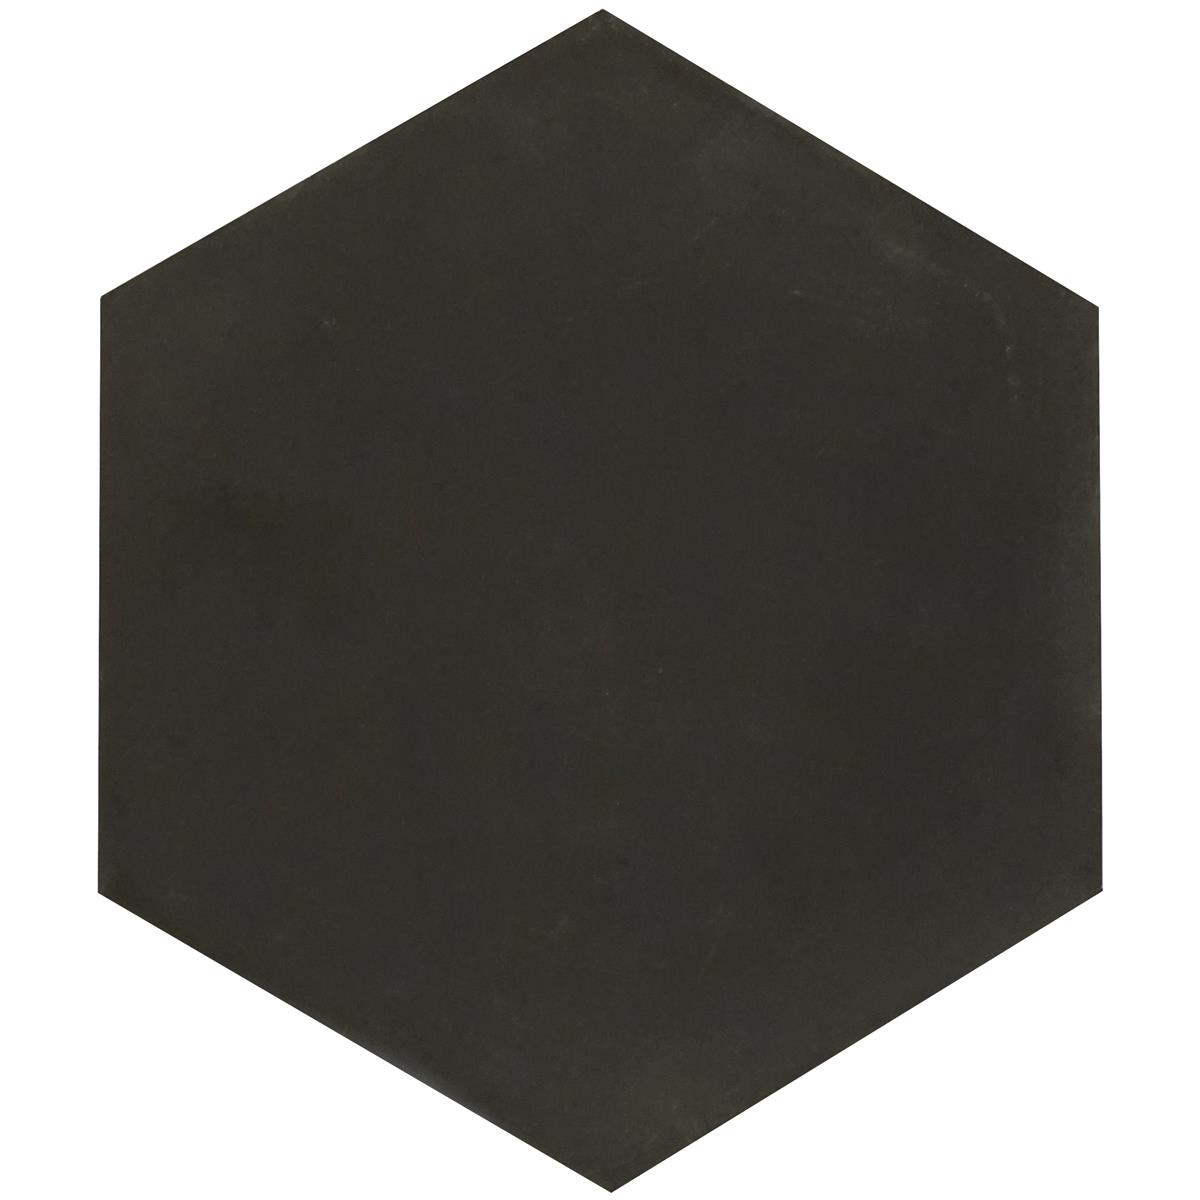 Hexagon black 17,4x15x1,6 cm